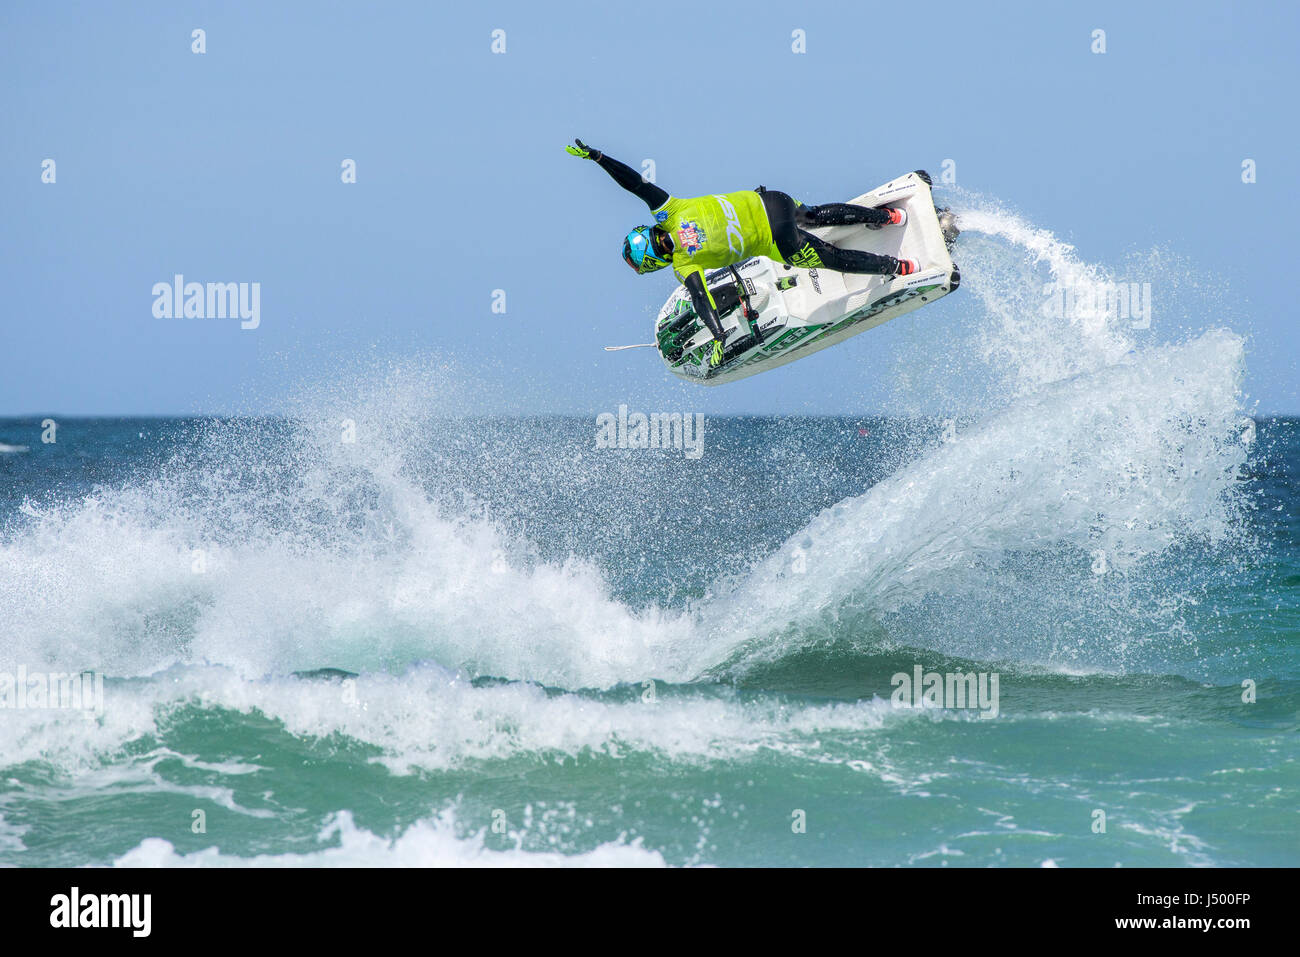 Jetski; Jet ski; Spectacular action; Aerial trick; Aerial stunt; IFWA championships; Battle of the Pilots; Competition; - Stock Image